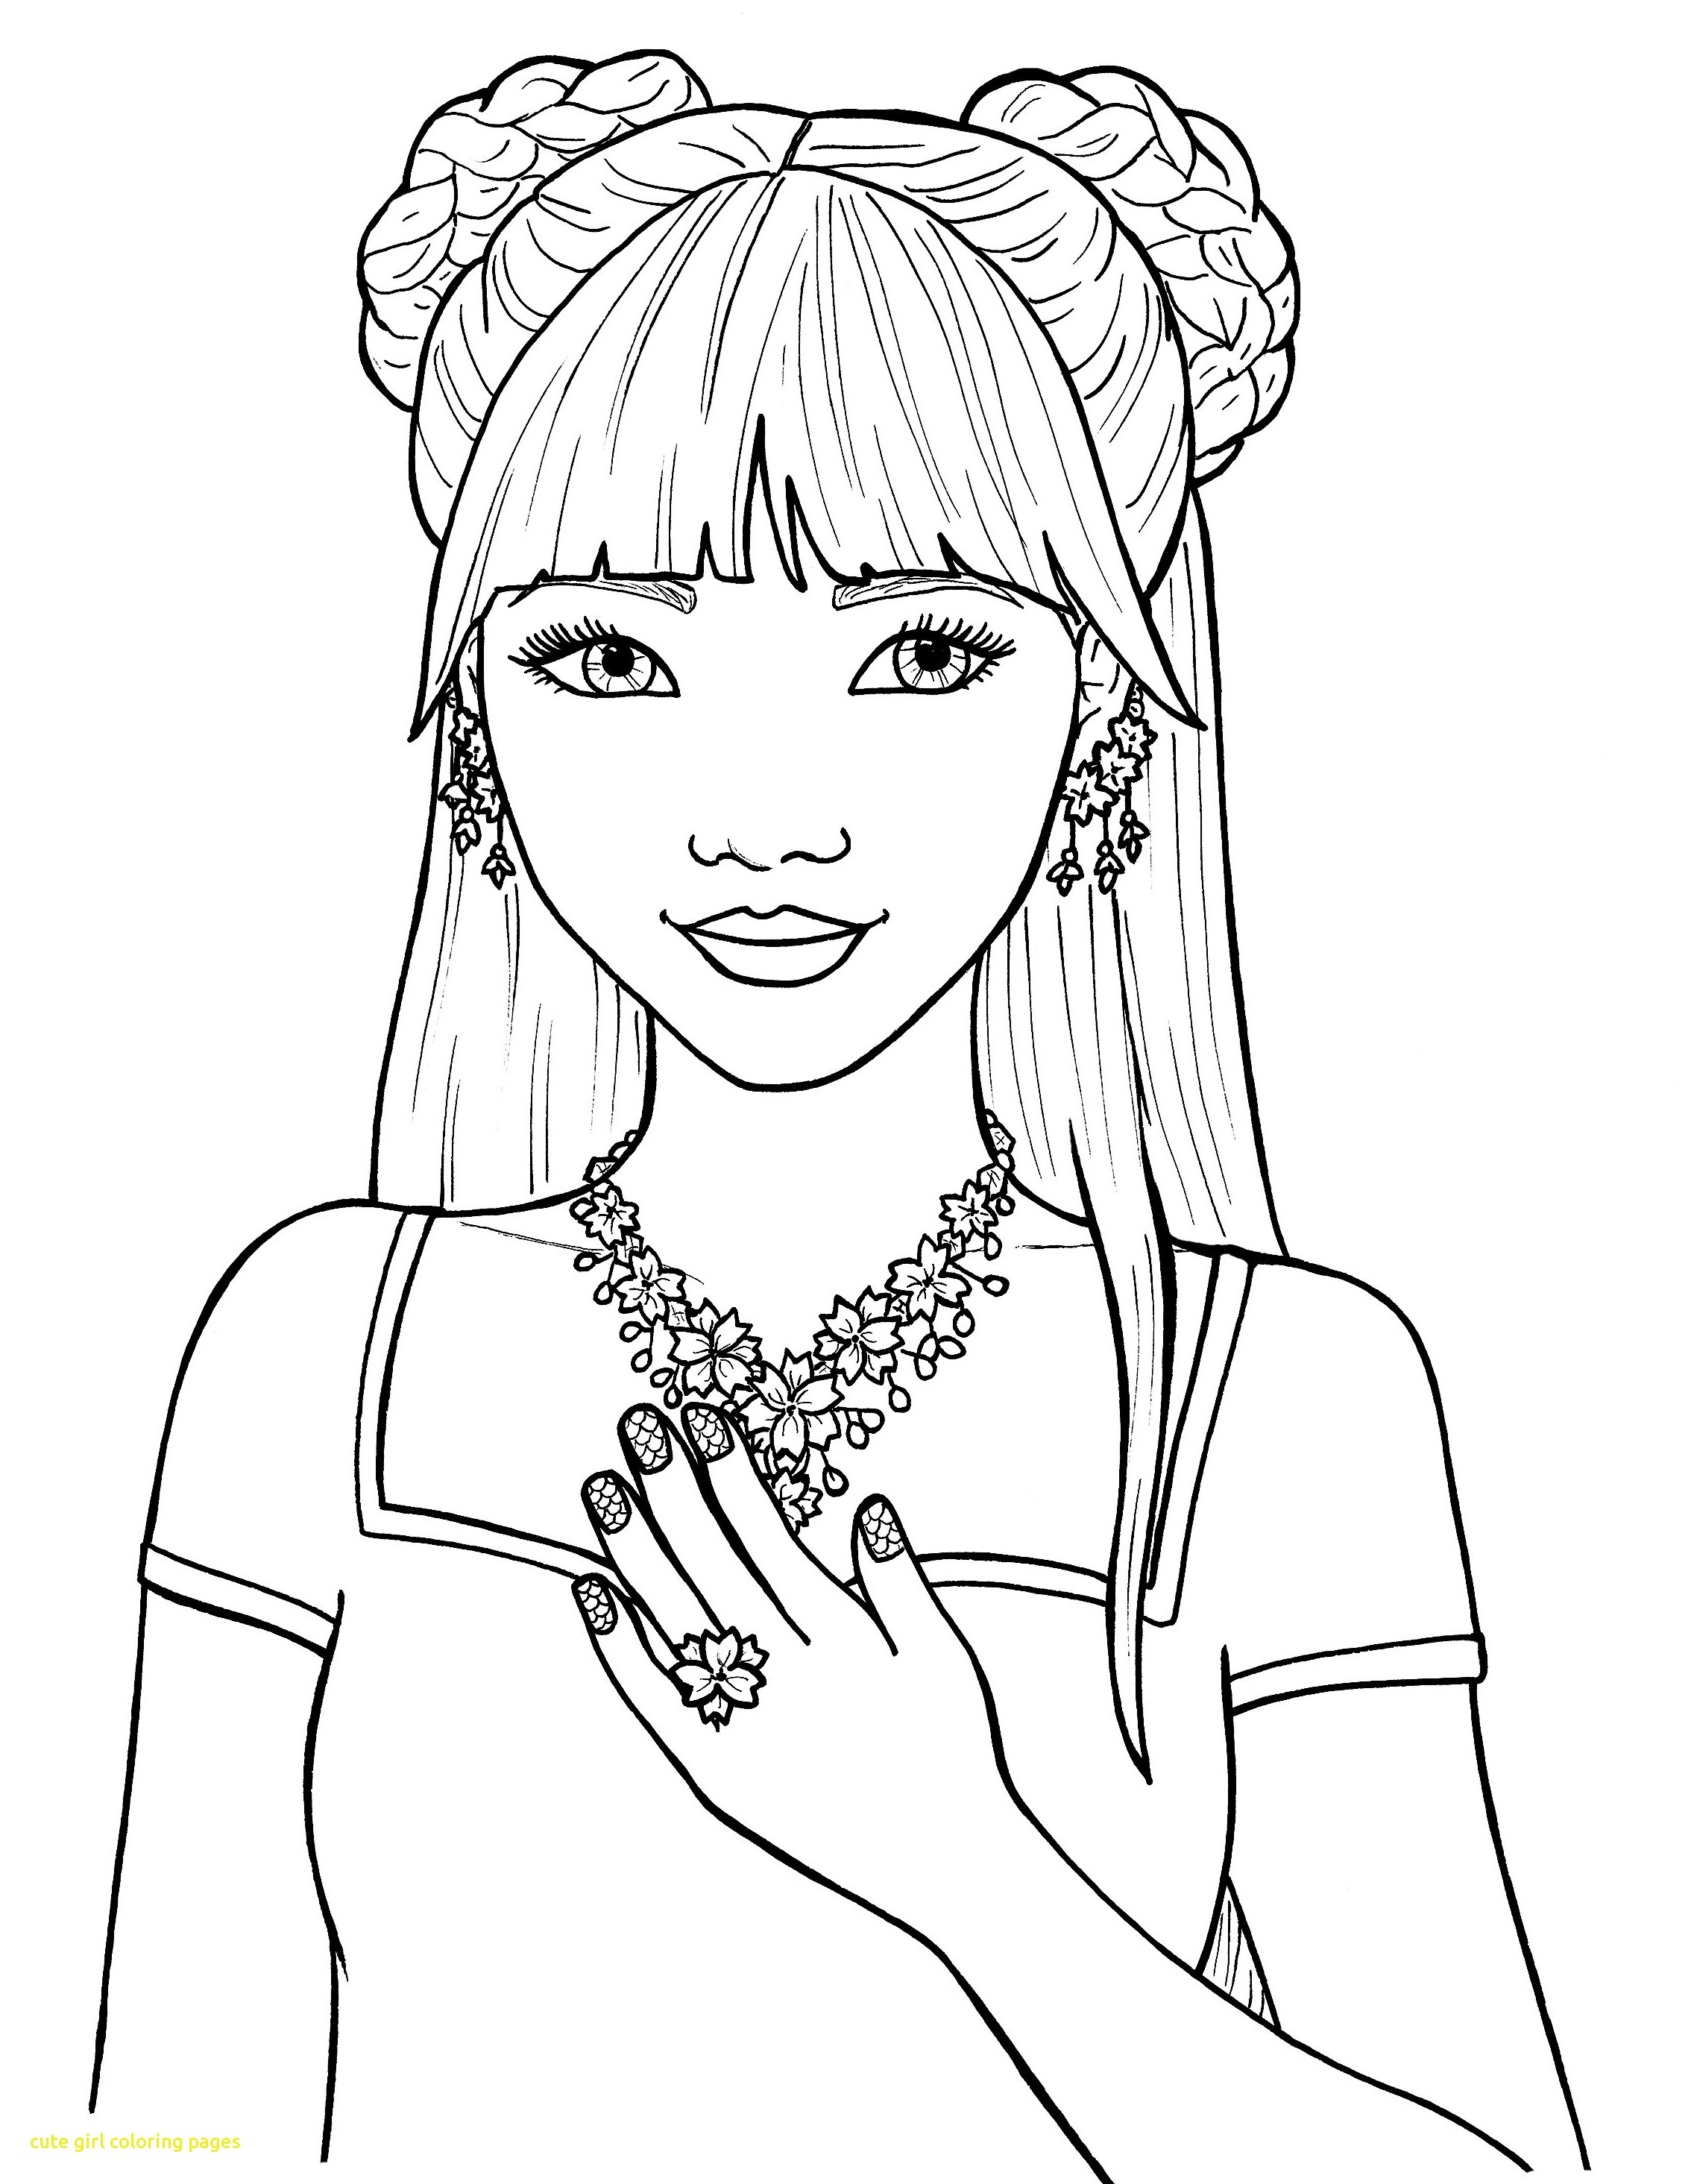 girl for coloring coloring pages for girls best coloring pages for kids for coloring girl